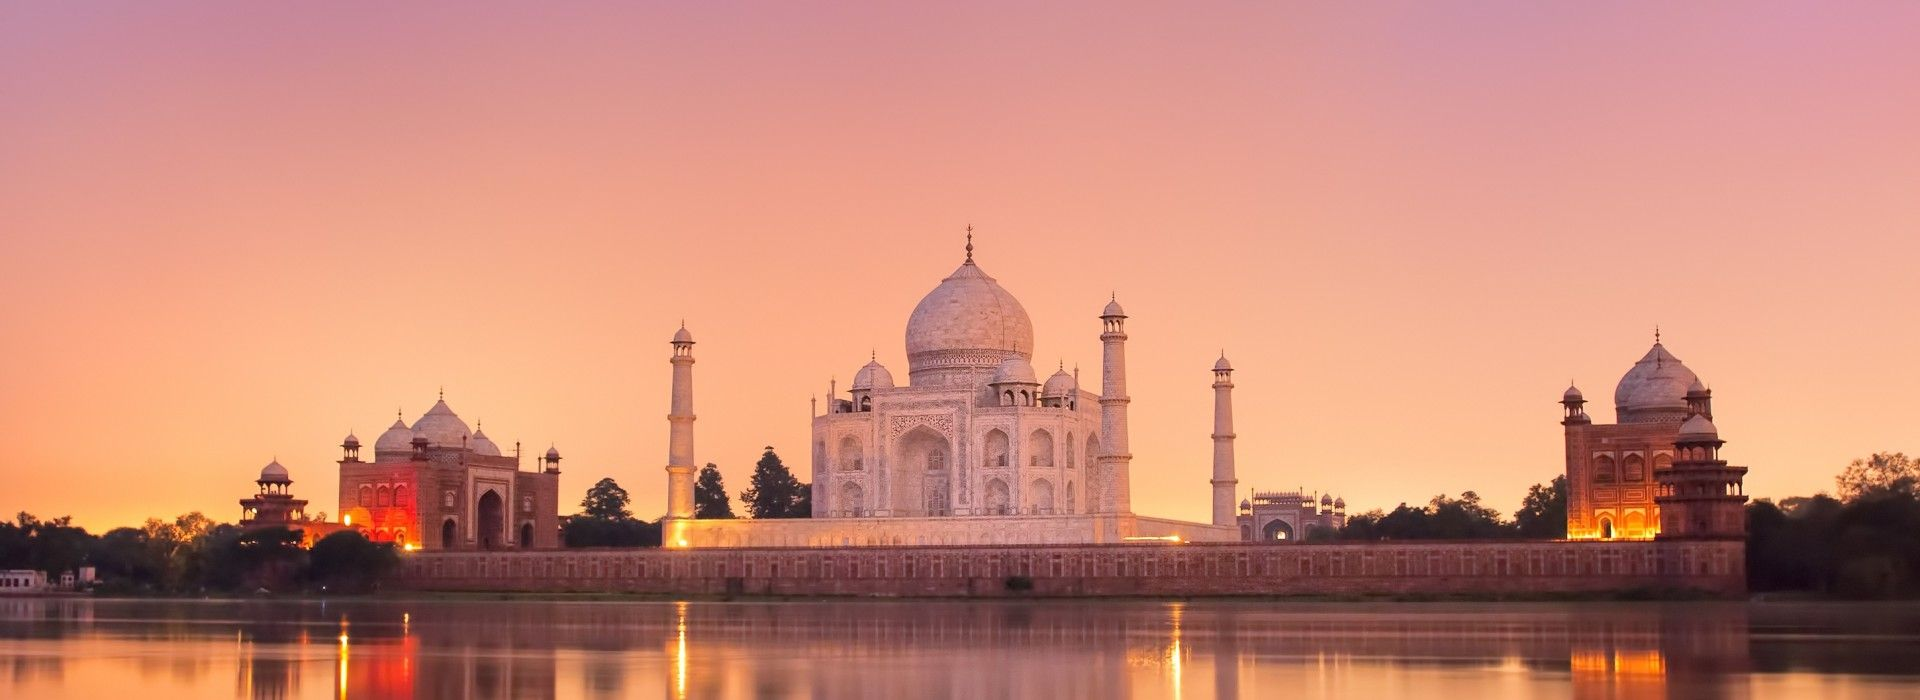 Beach, romance, getaways and relaxation Tours in Delhi & Golden Triangle